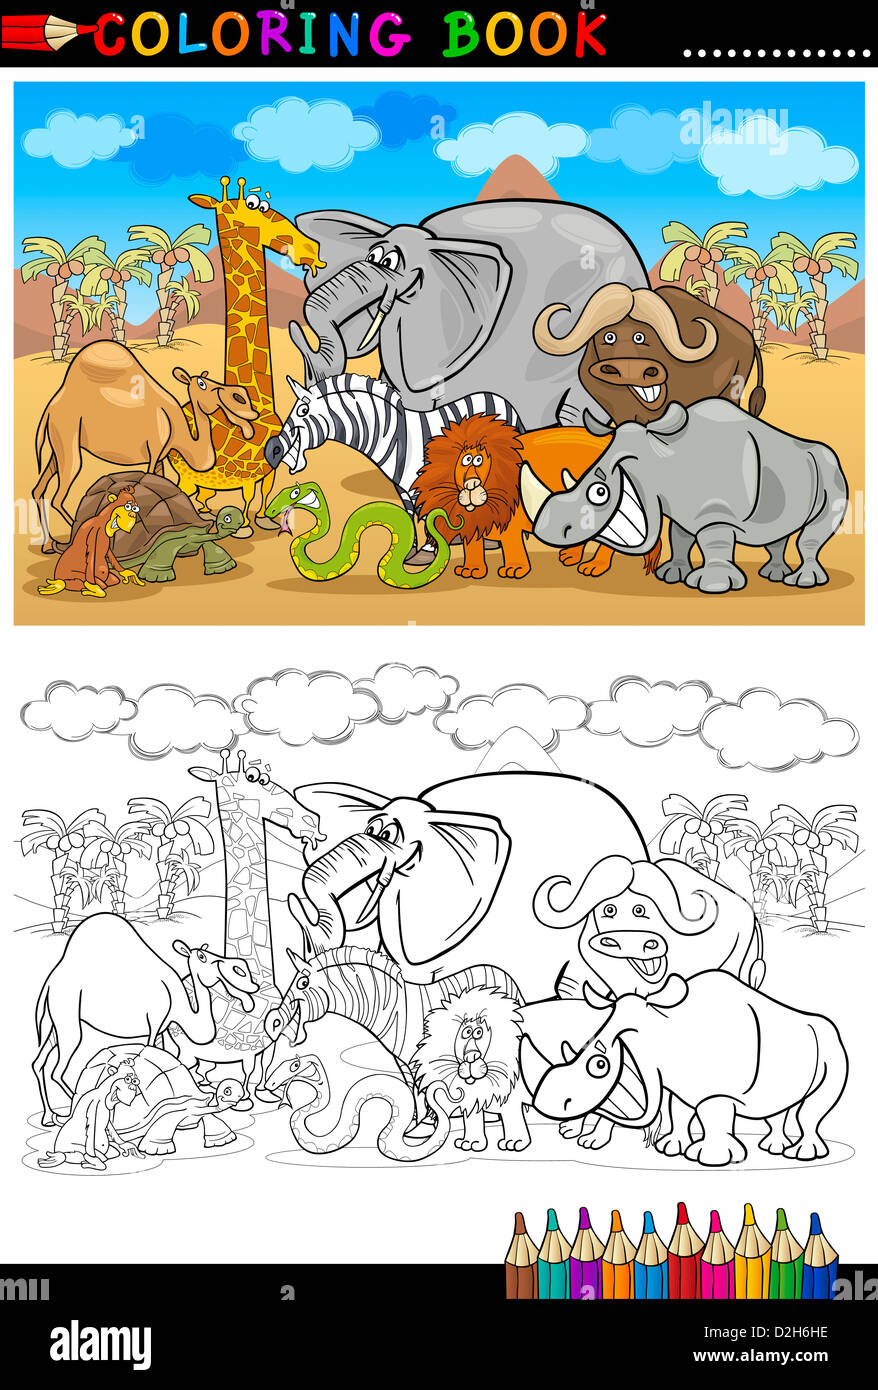 Cartoon Illustration Of Funny Safari Wild Animals Like Elephant Rhino Lion Zebra Giraffe And Monkey For Coloring Book